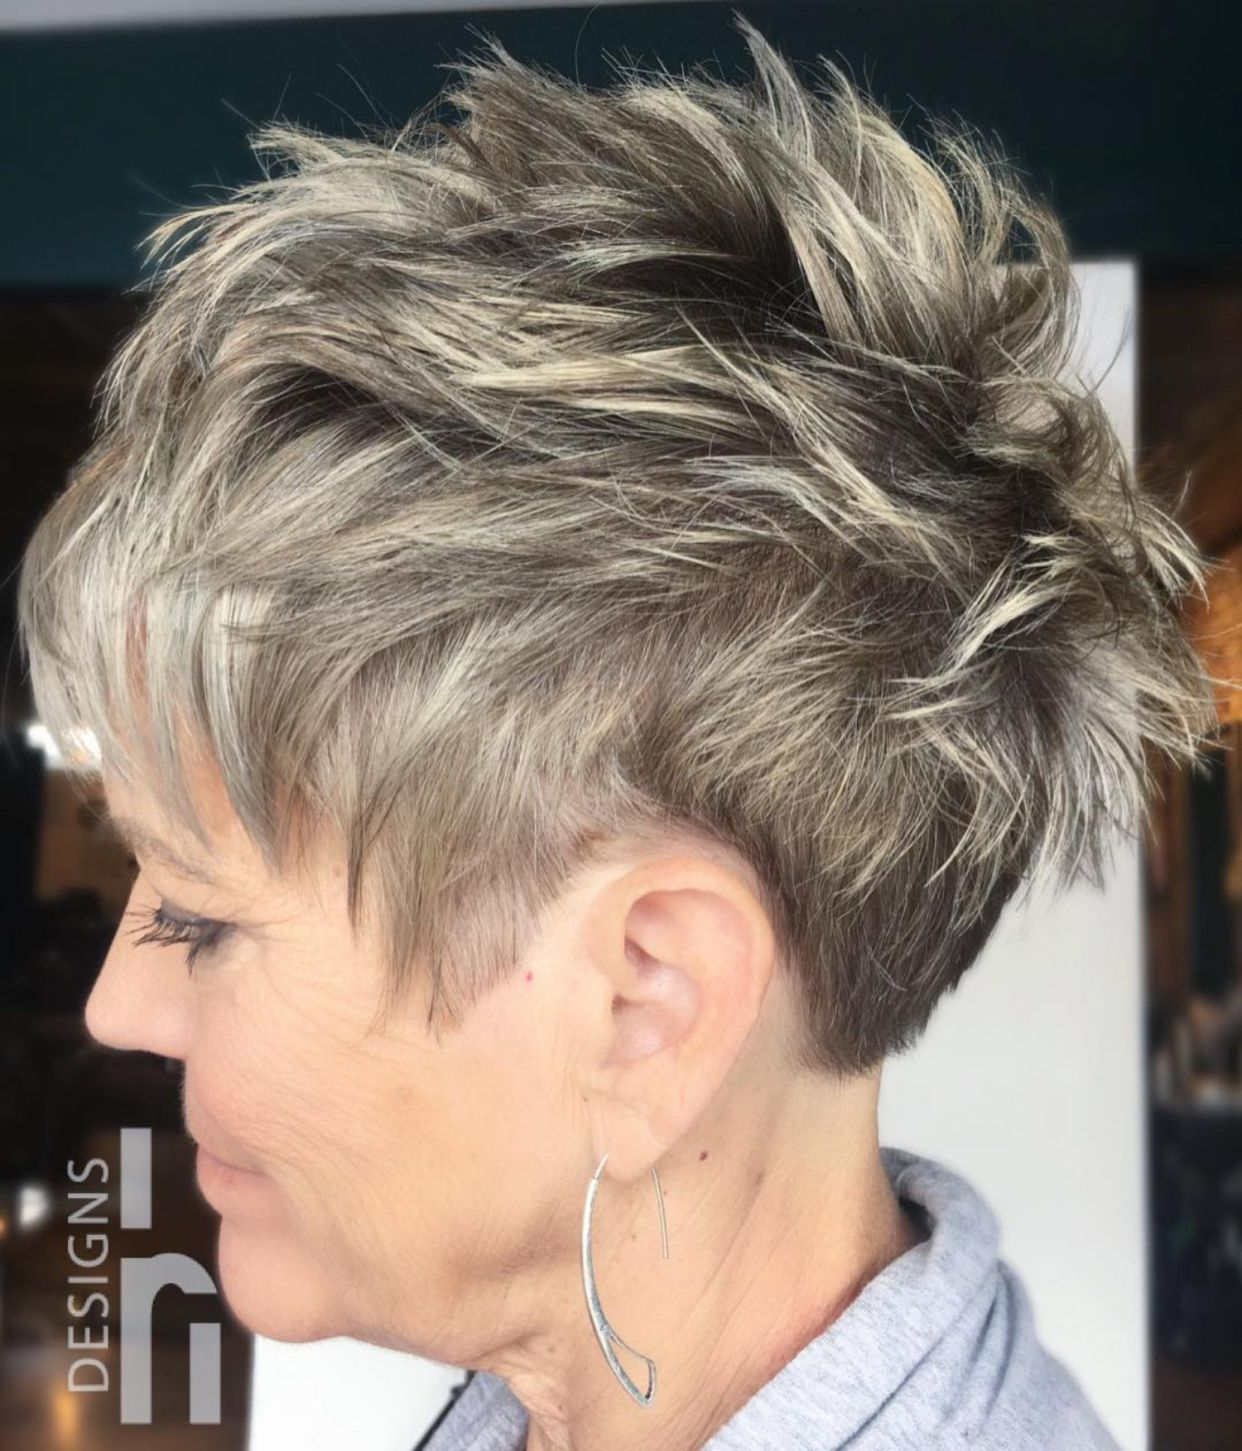 classy and simple short hairstyles for women over in